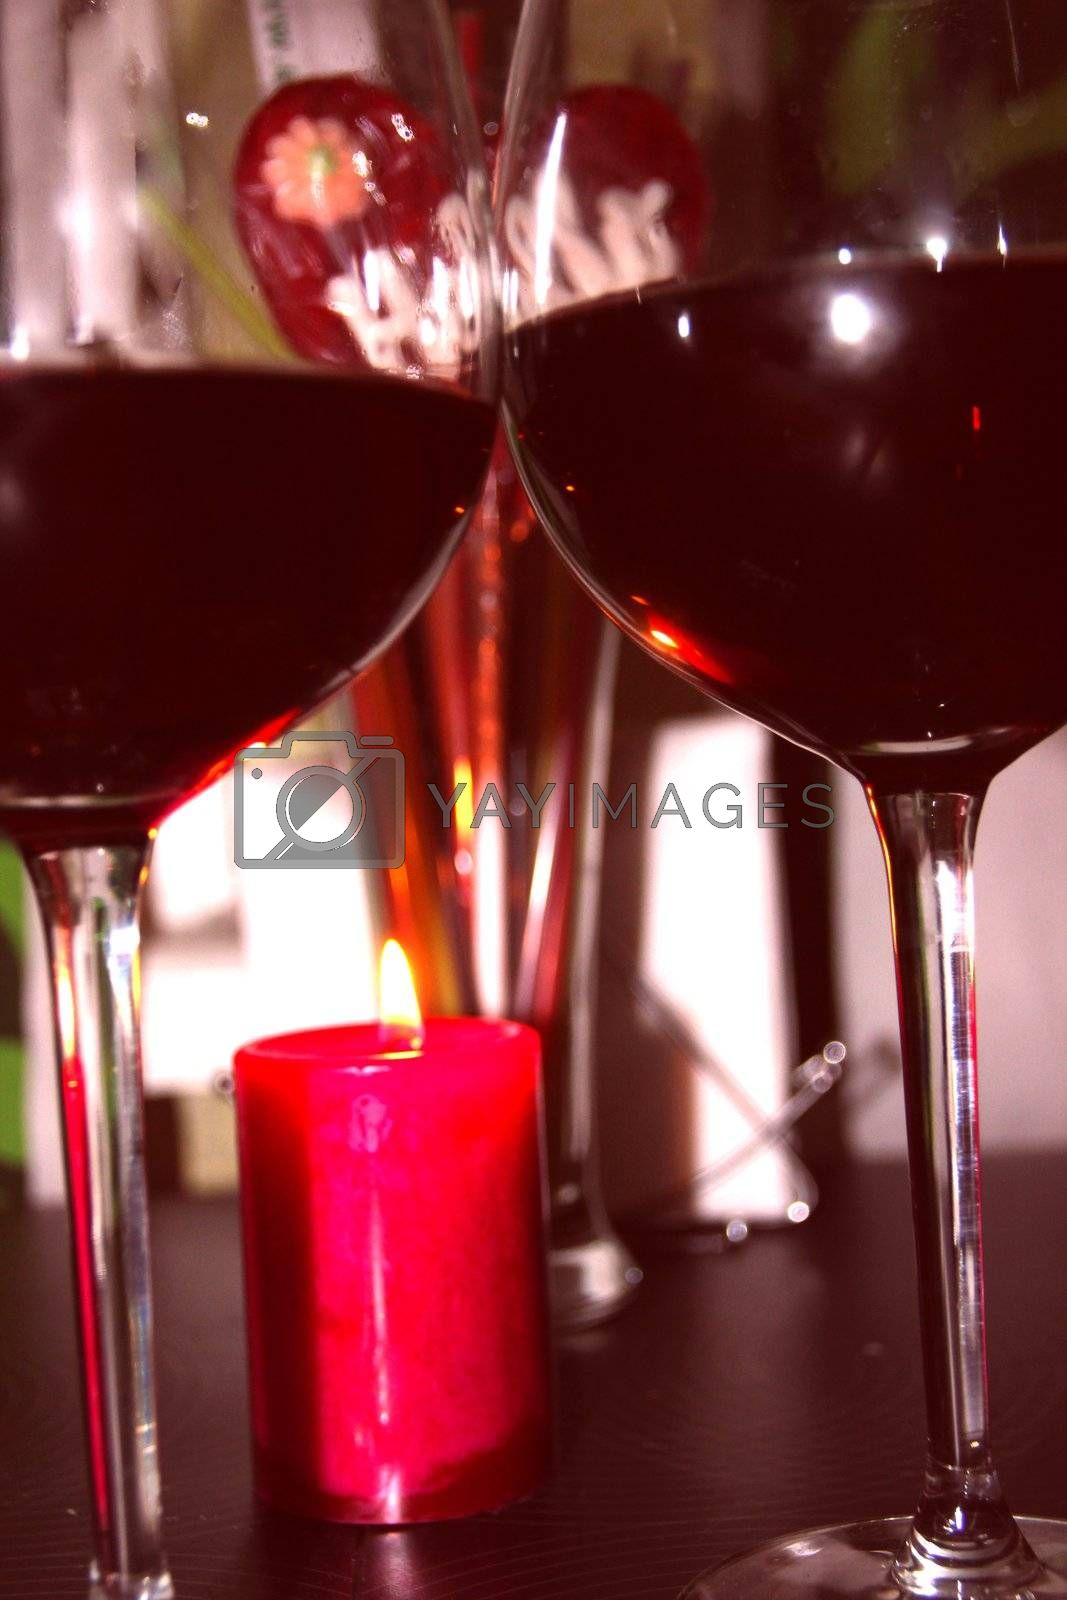 Two glasses of red wine next to the candles and candy in the form of the heart in the background